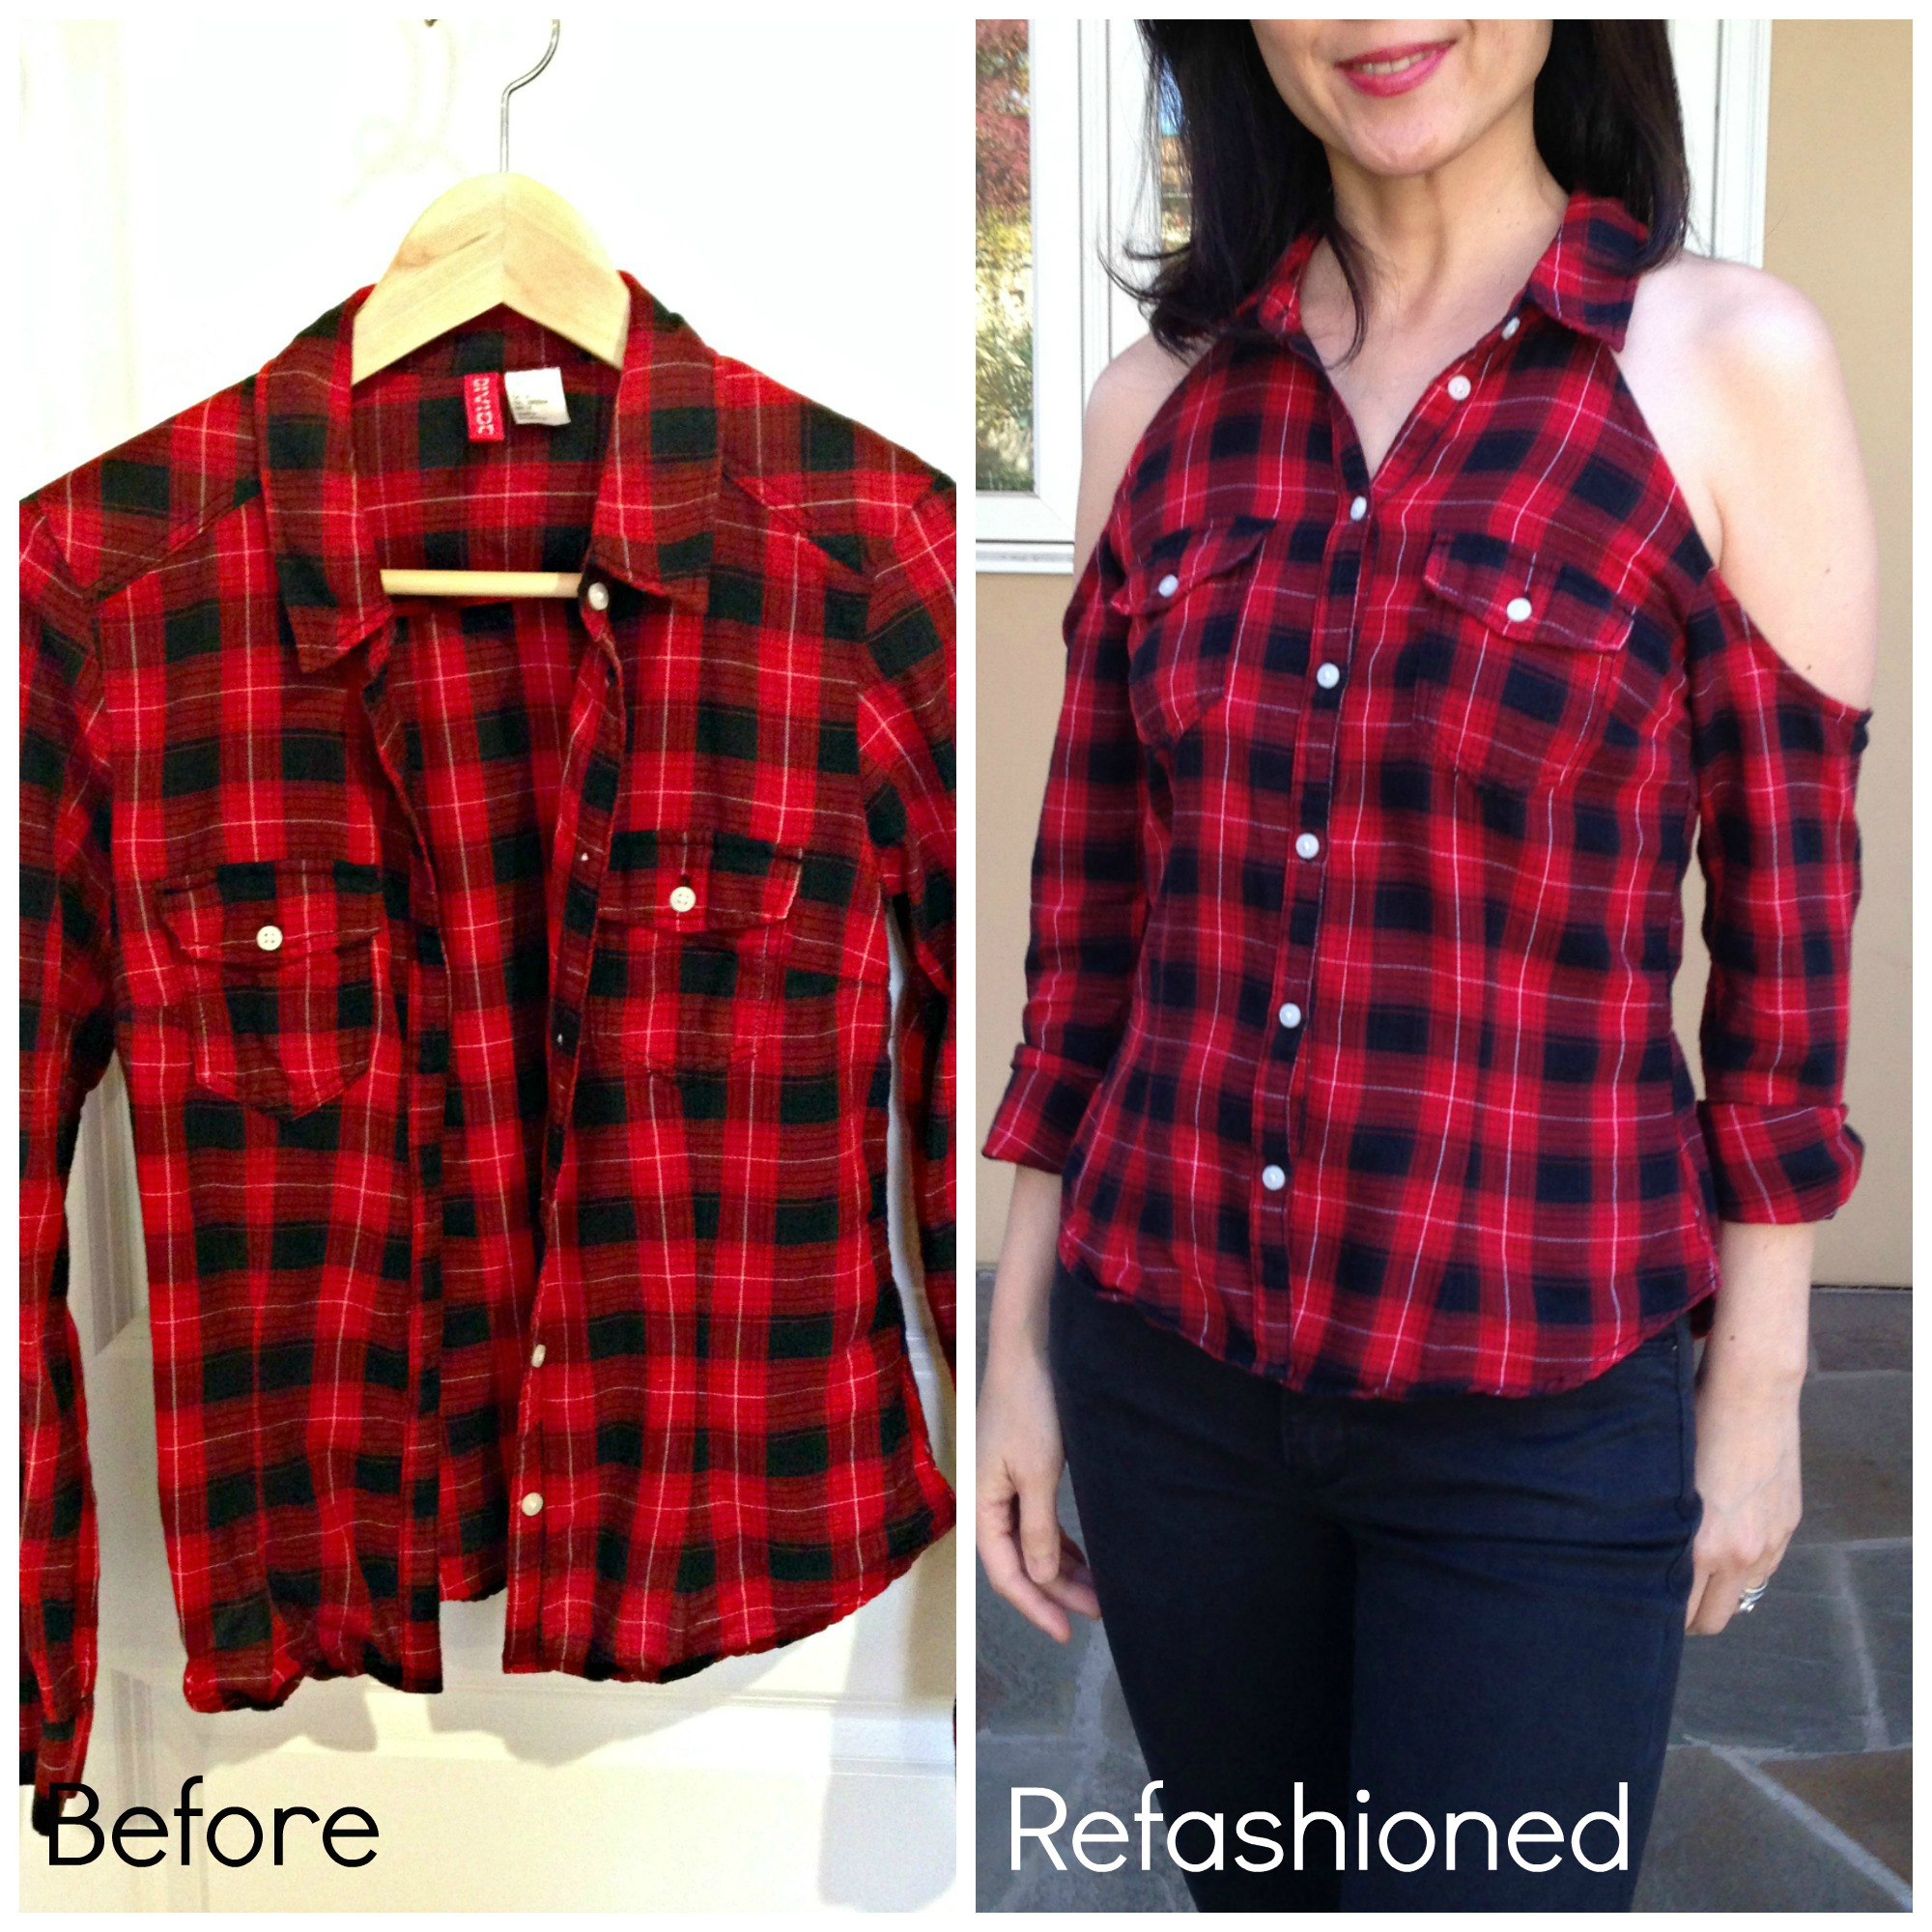 Refashion a $3 thrift store flannel shirt with cold shoulder cutouts